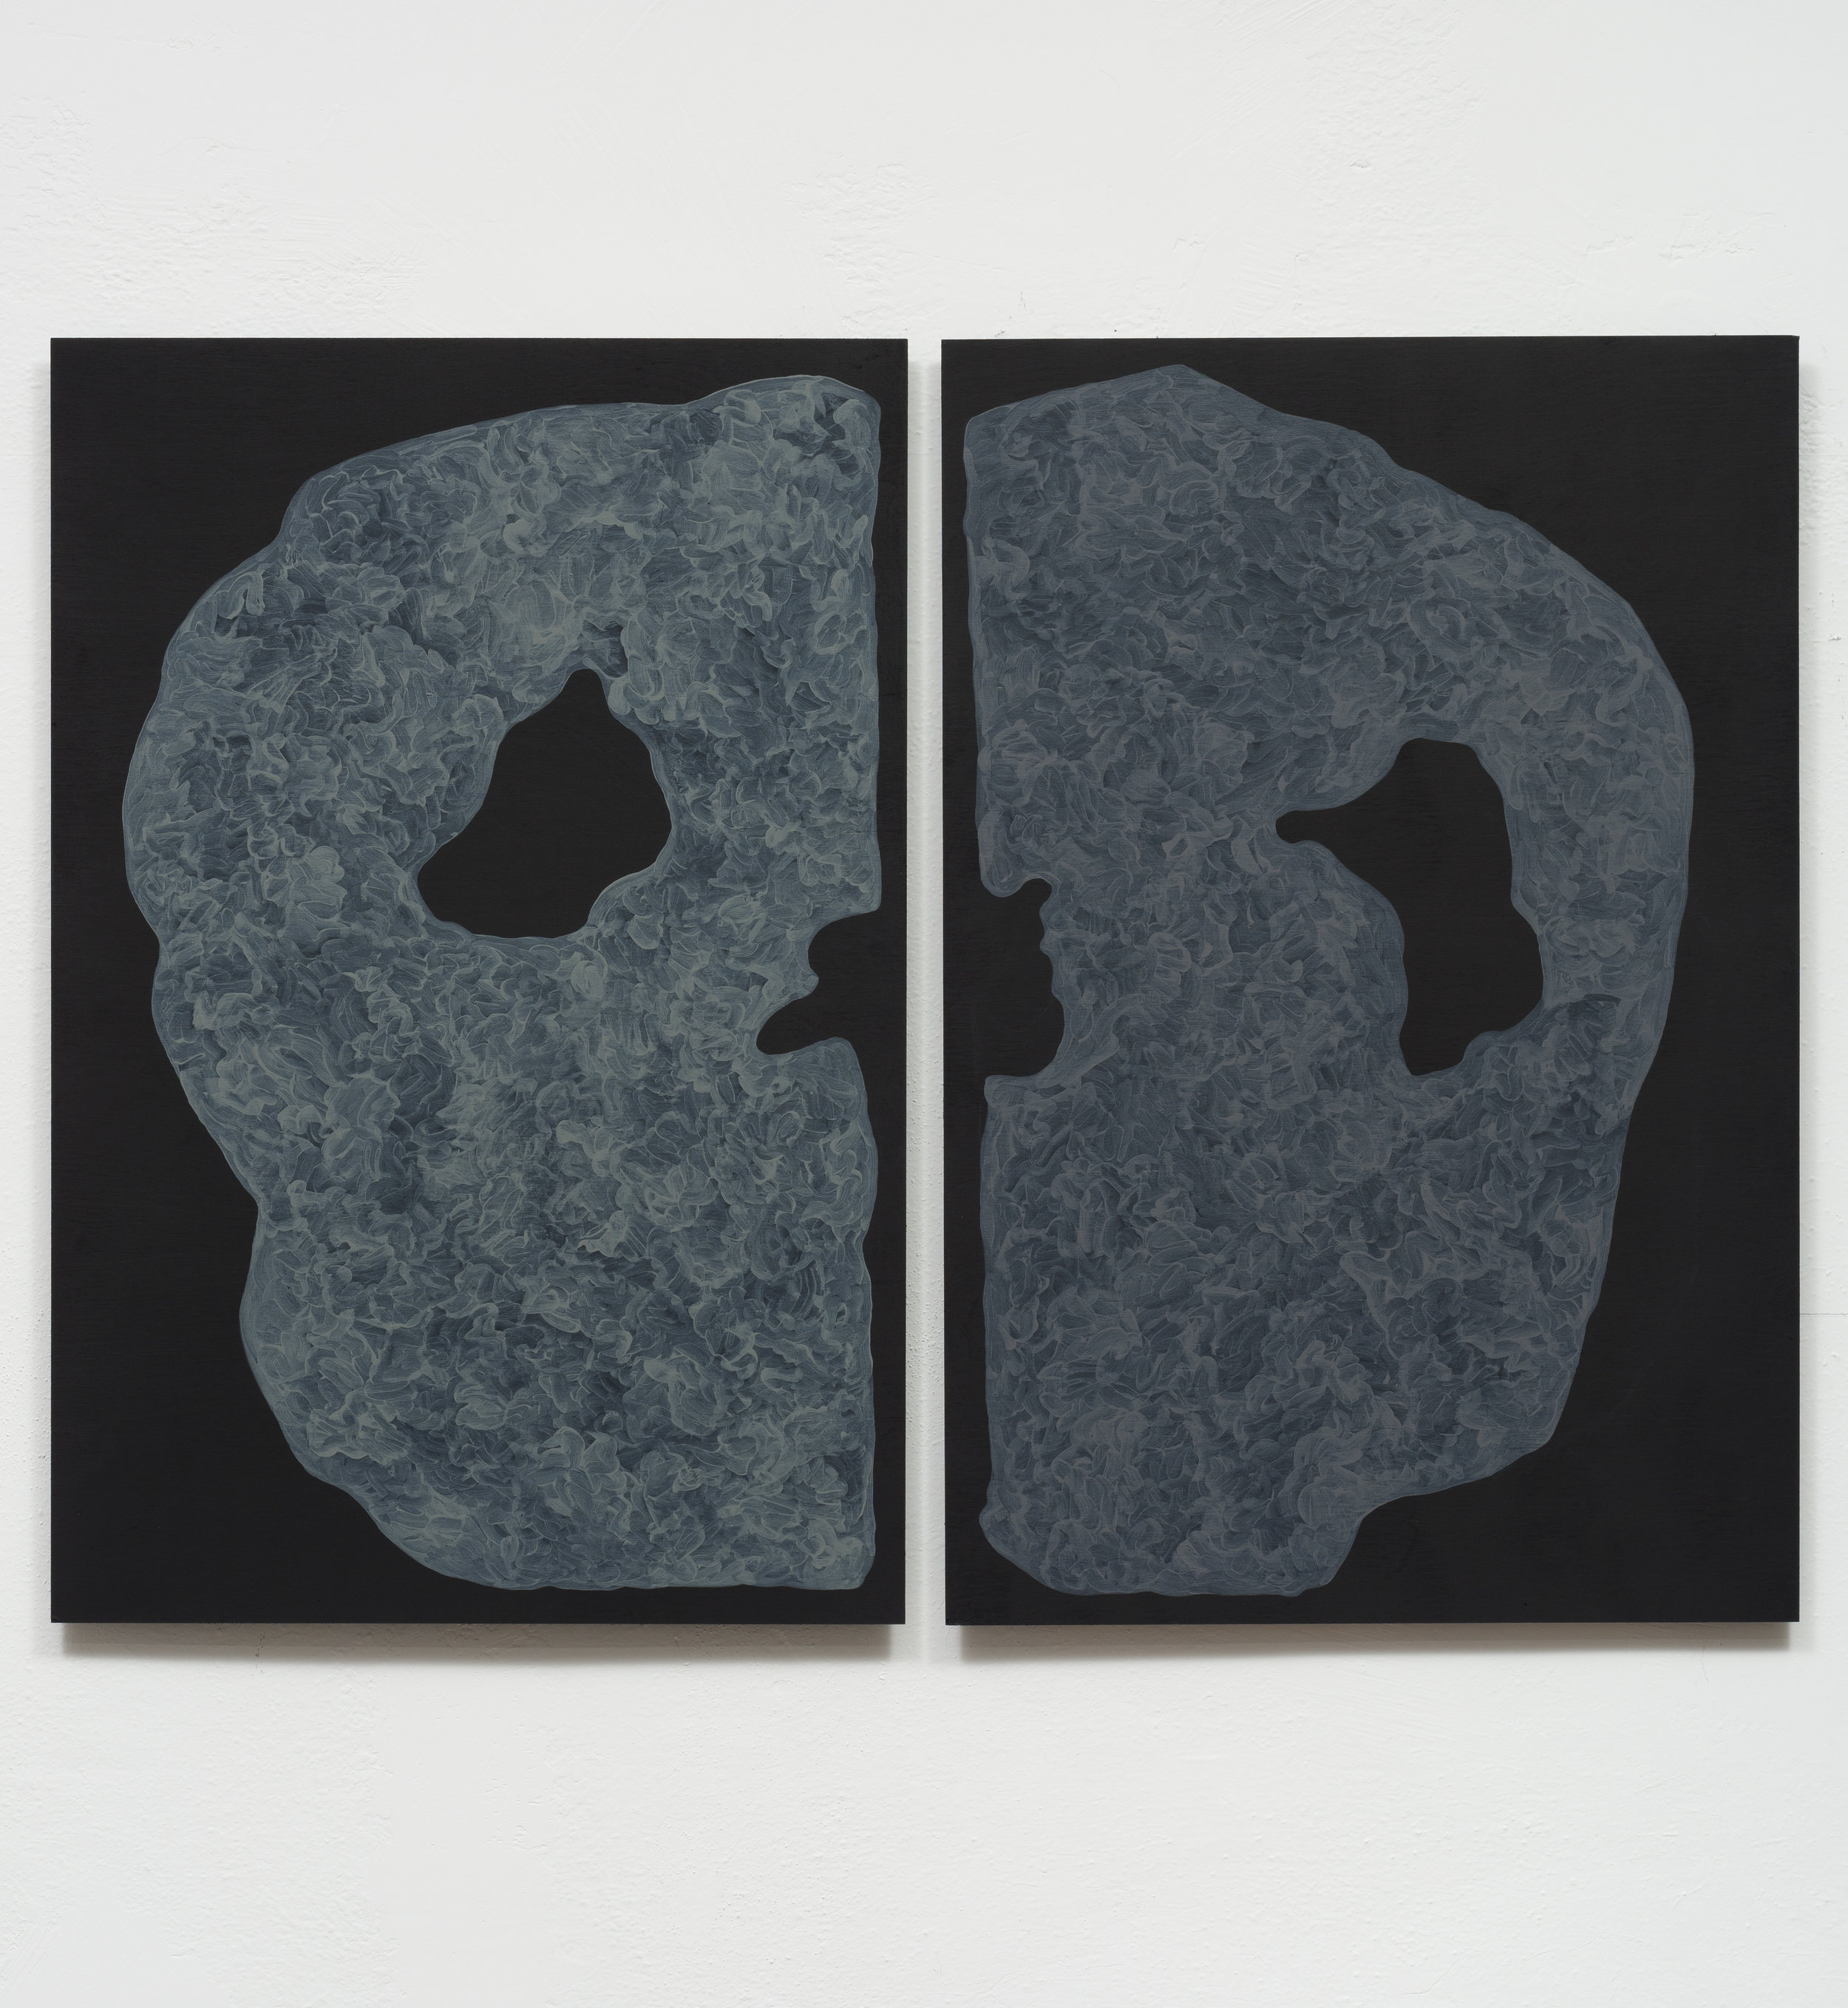 Monique Prieto,  Grey Set , 2017, acrylic on panel, 48.5 x 36 inches (diptych)